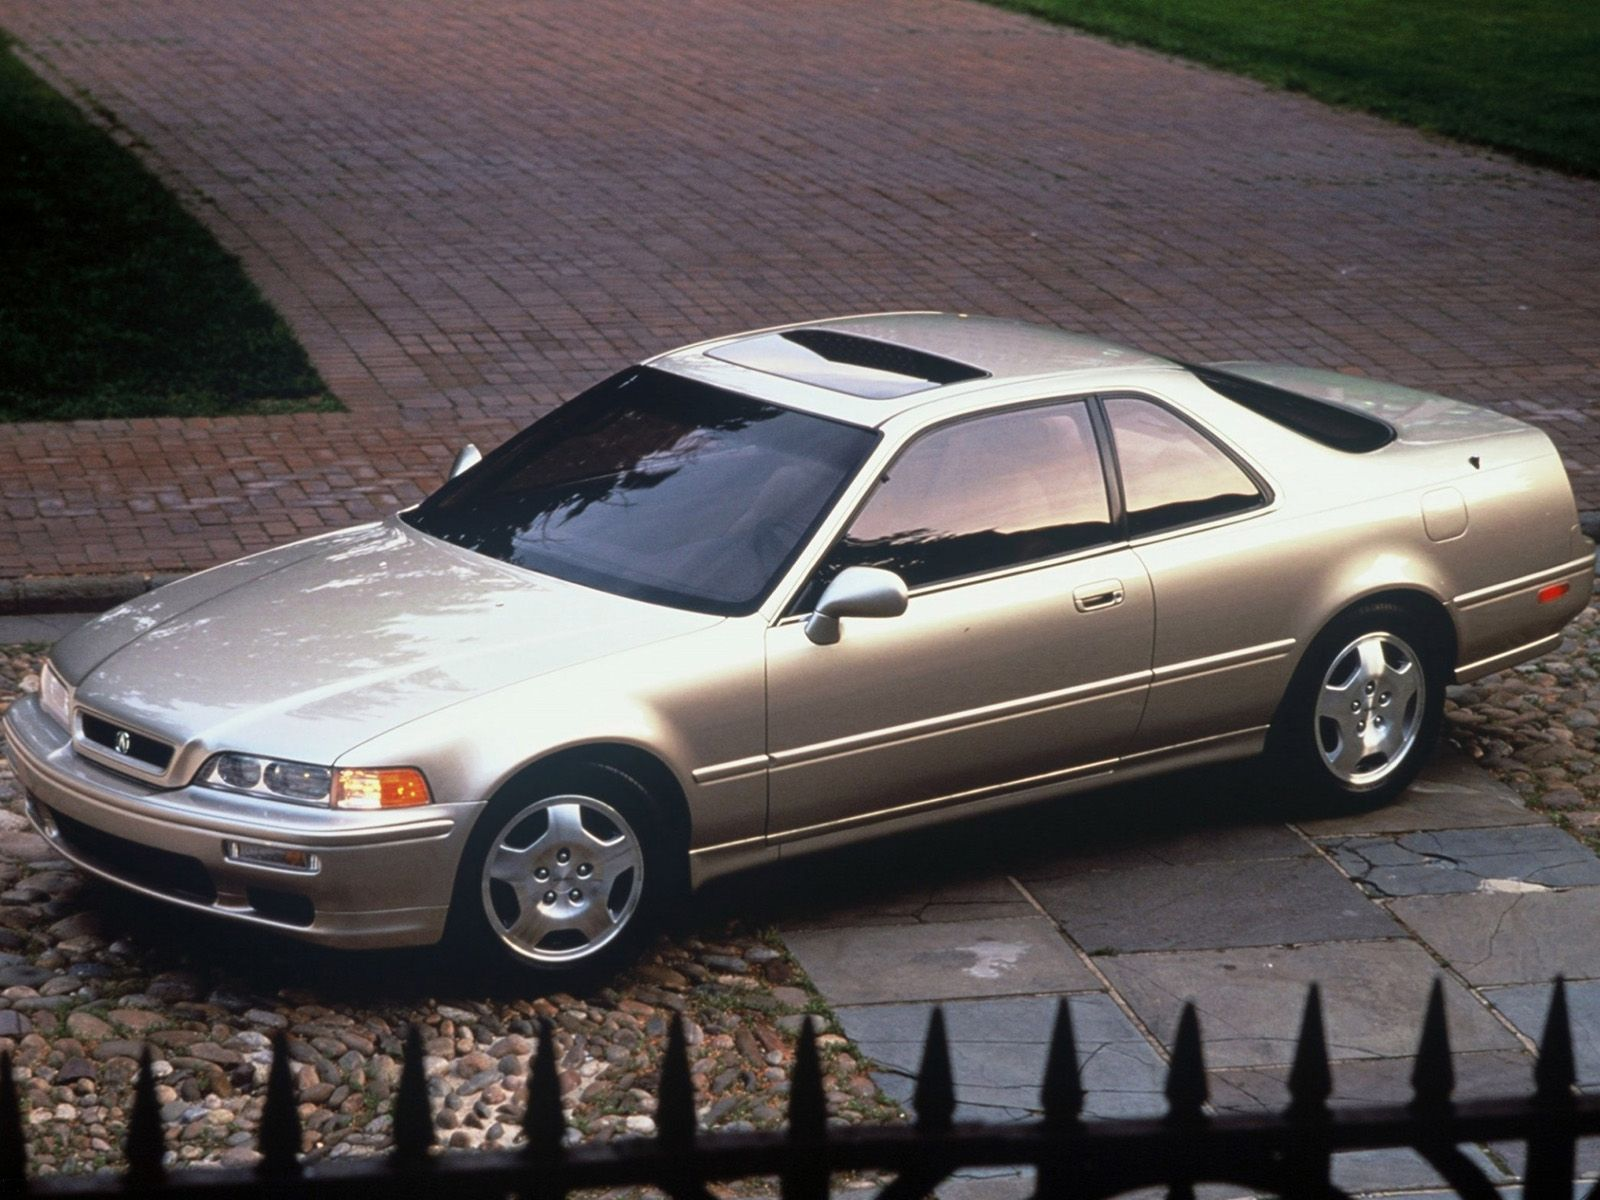 1992 Acura Legend Coupe KA Beautiful car Pinterest